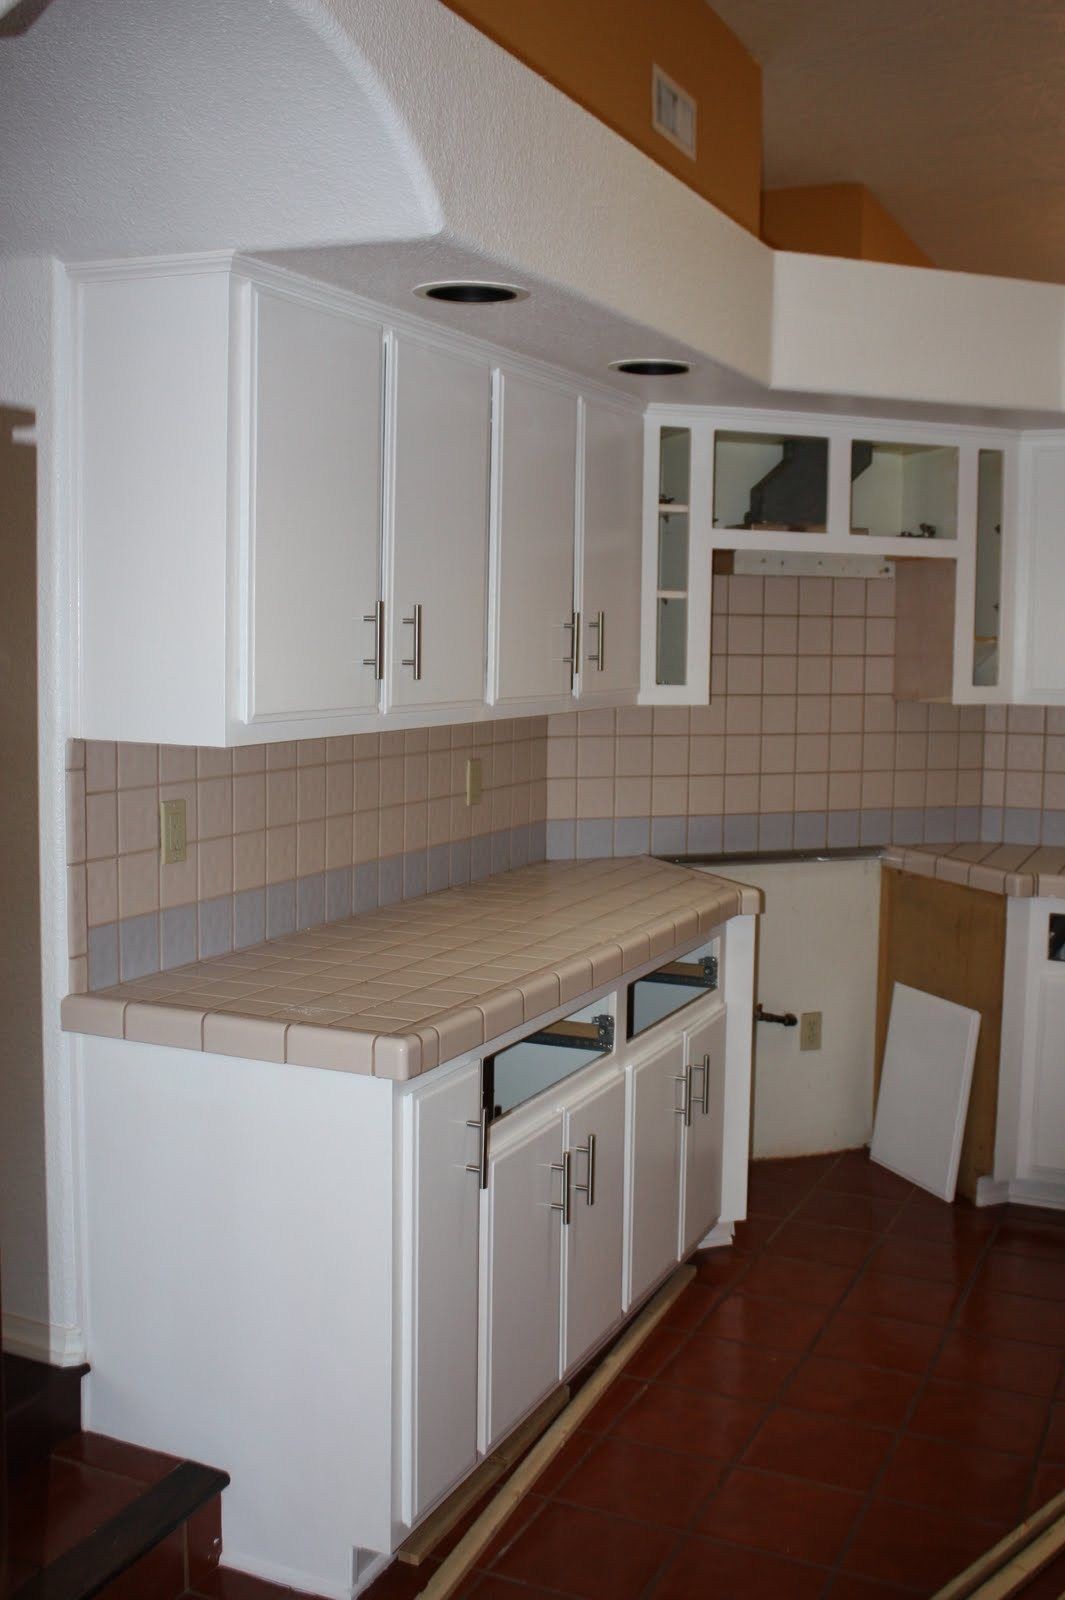 5 How To Redo Countertops With Concrete, By Design Stocker ...